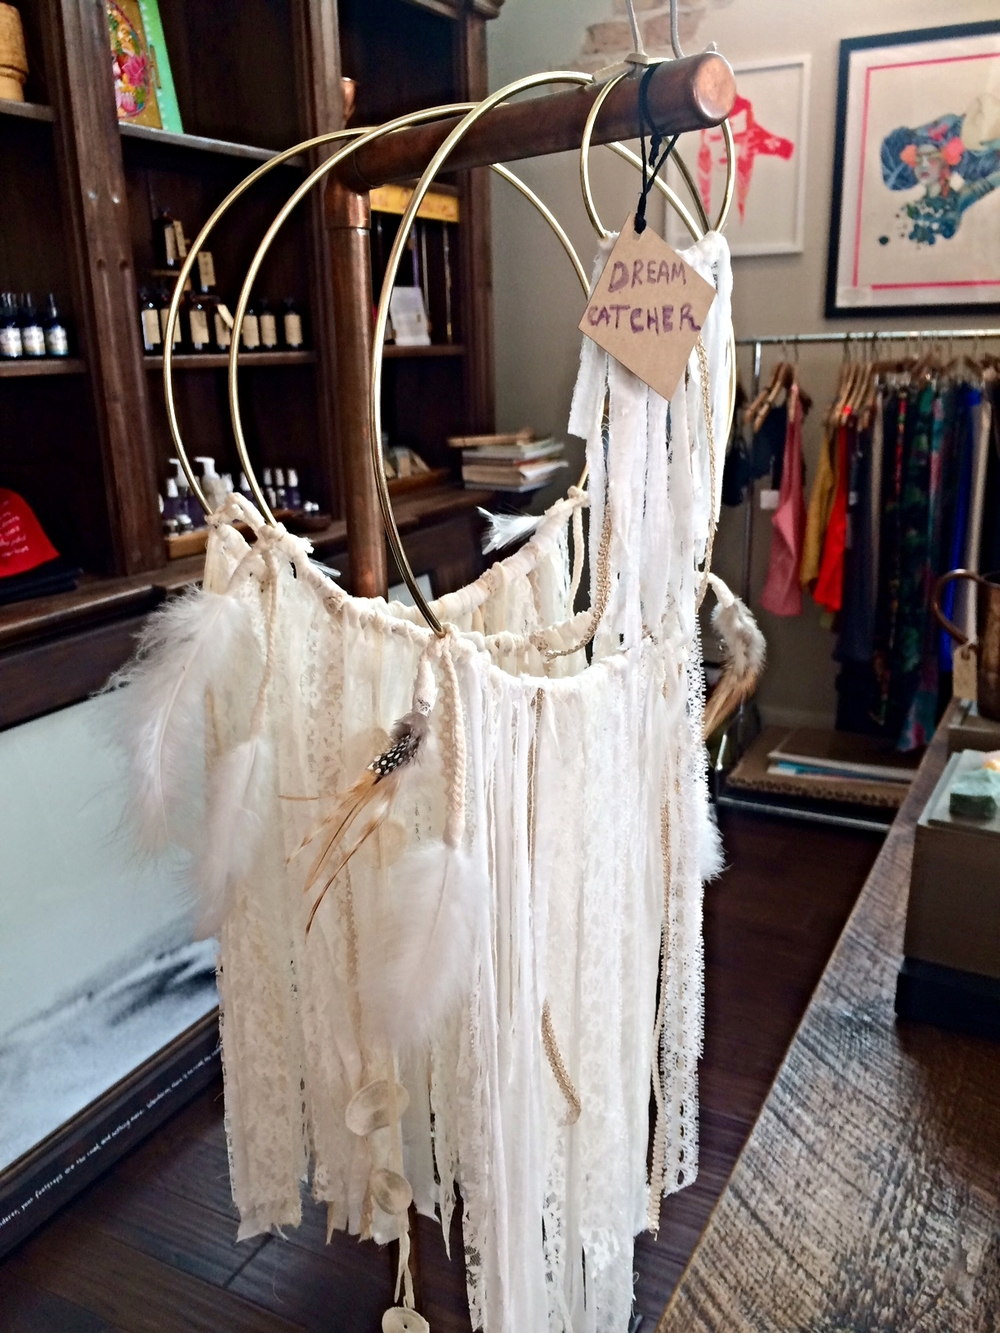 Large and small dreamcatchers on display at Shatki Yoga Key West.